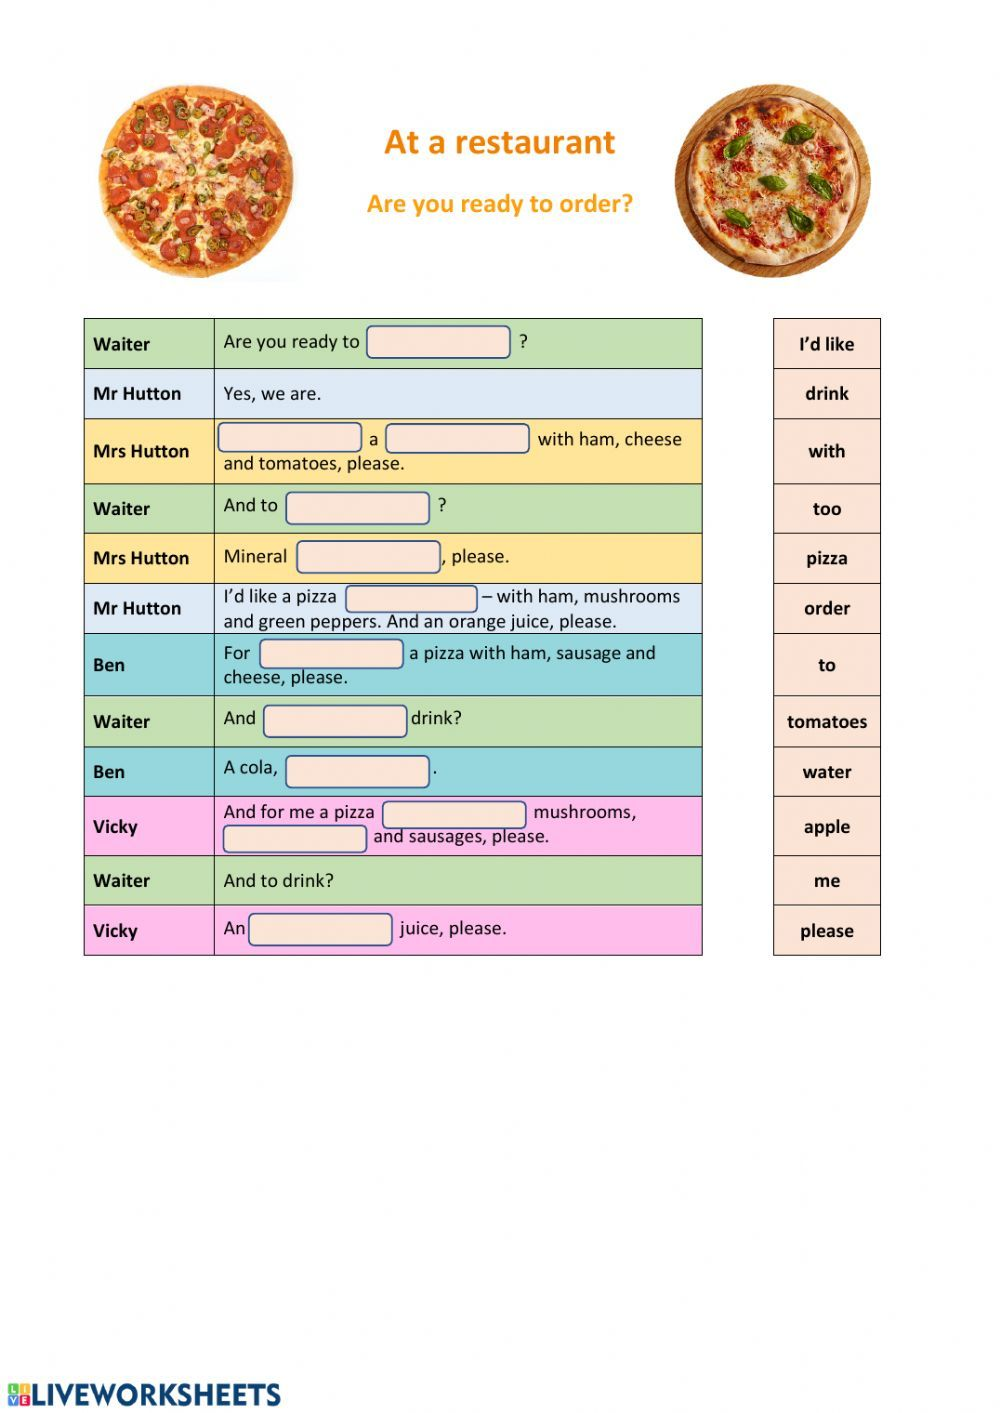 At The Restaurant Interactive And Downloadable Worksheet You Can Do The Exercises English As A Second Language Esl English As A Second Language Order Pizza [ 1413 x 1000 Pixel ]